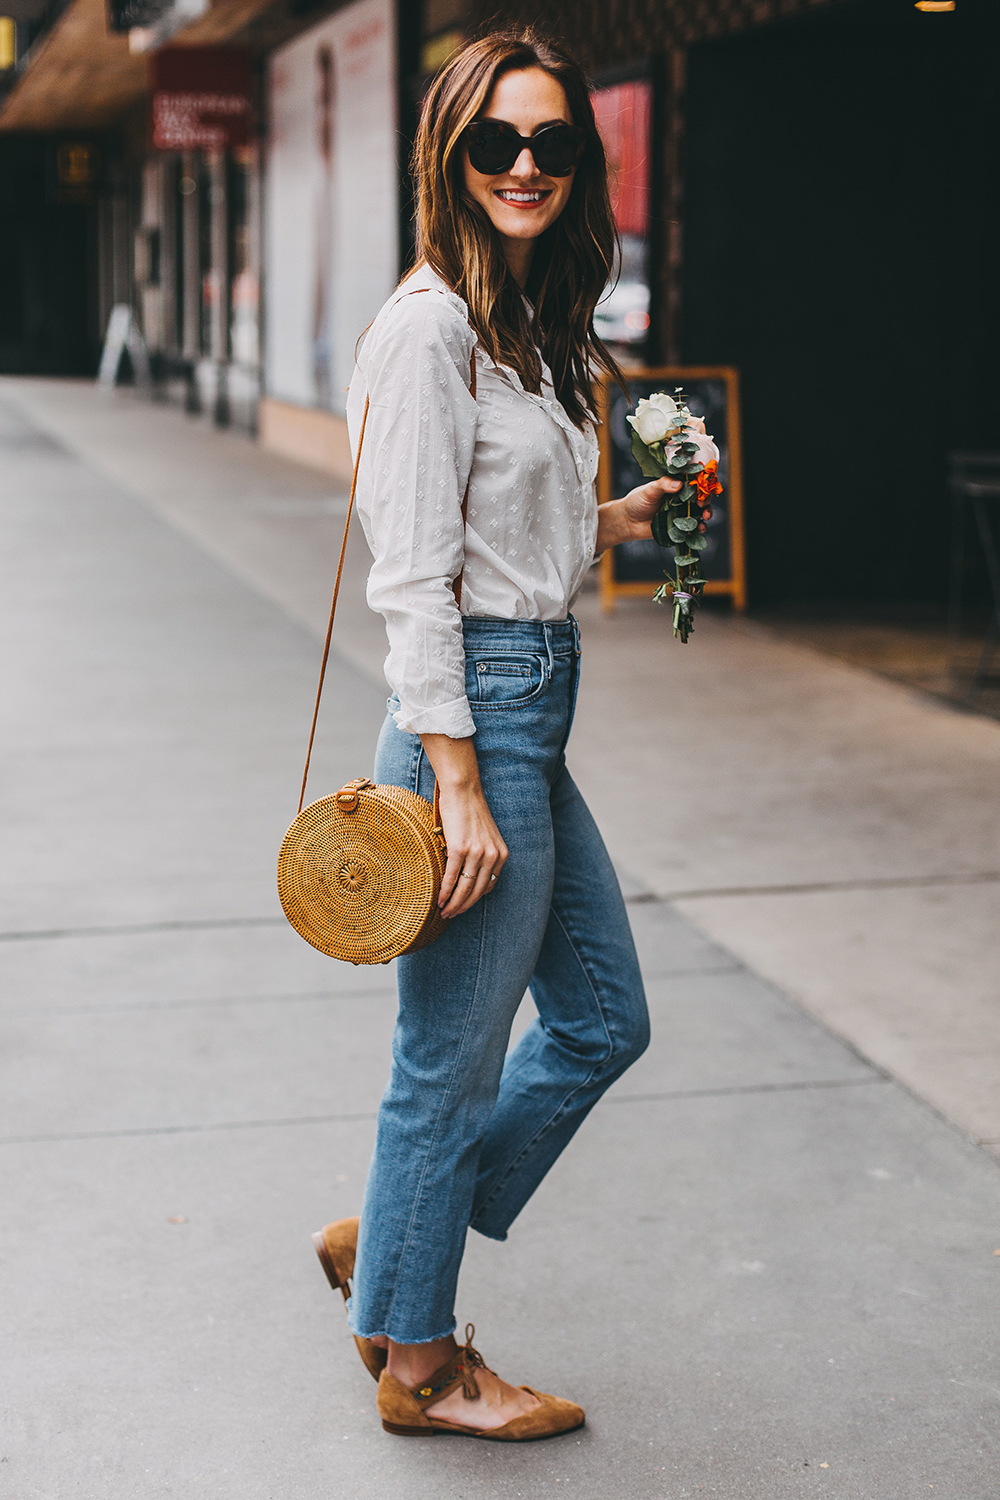 livvyland-blog-olivia-watson-austin-texas-fashion-style-blogger-sezane-white-eyelet-blouse-kick-flare-jeans-simple-spring-outfit-12